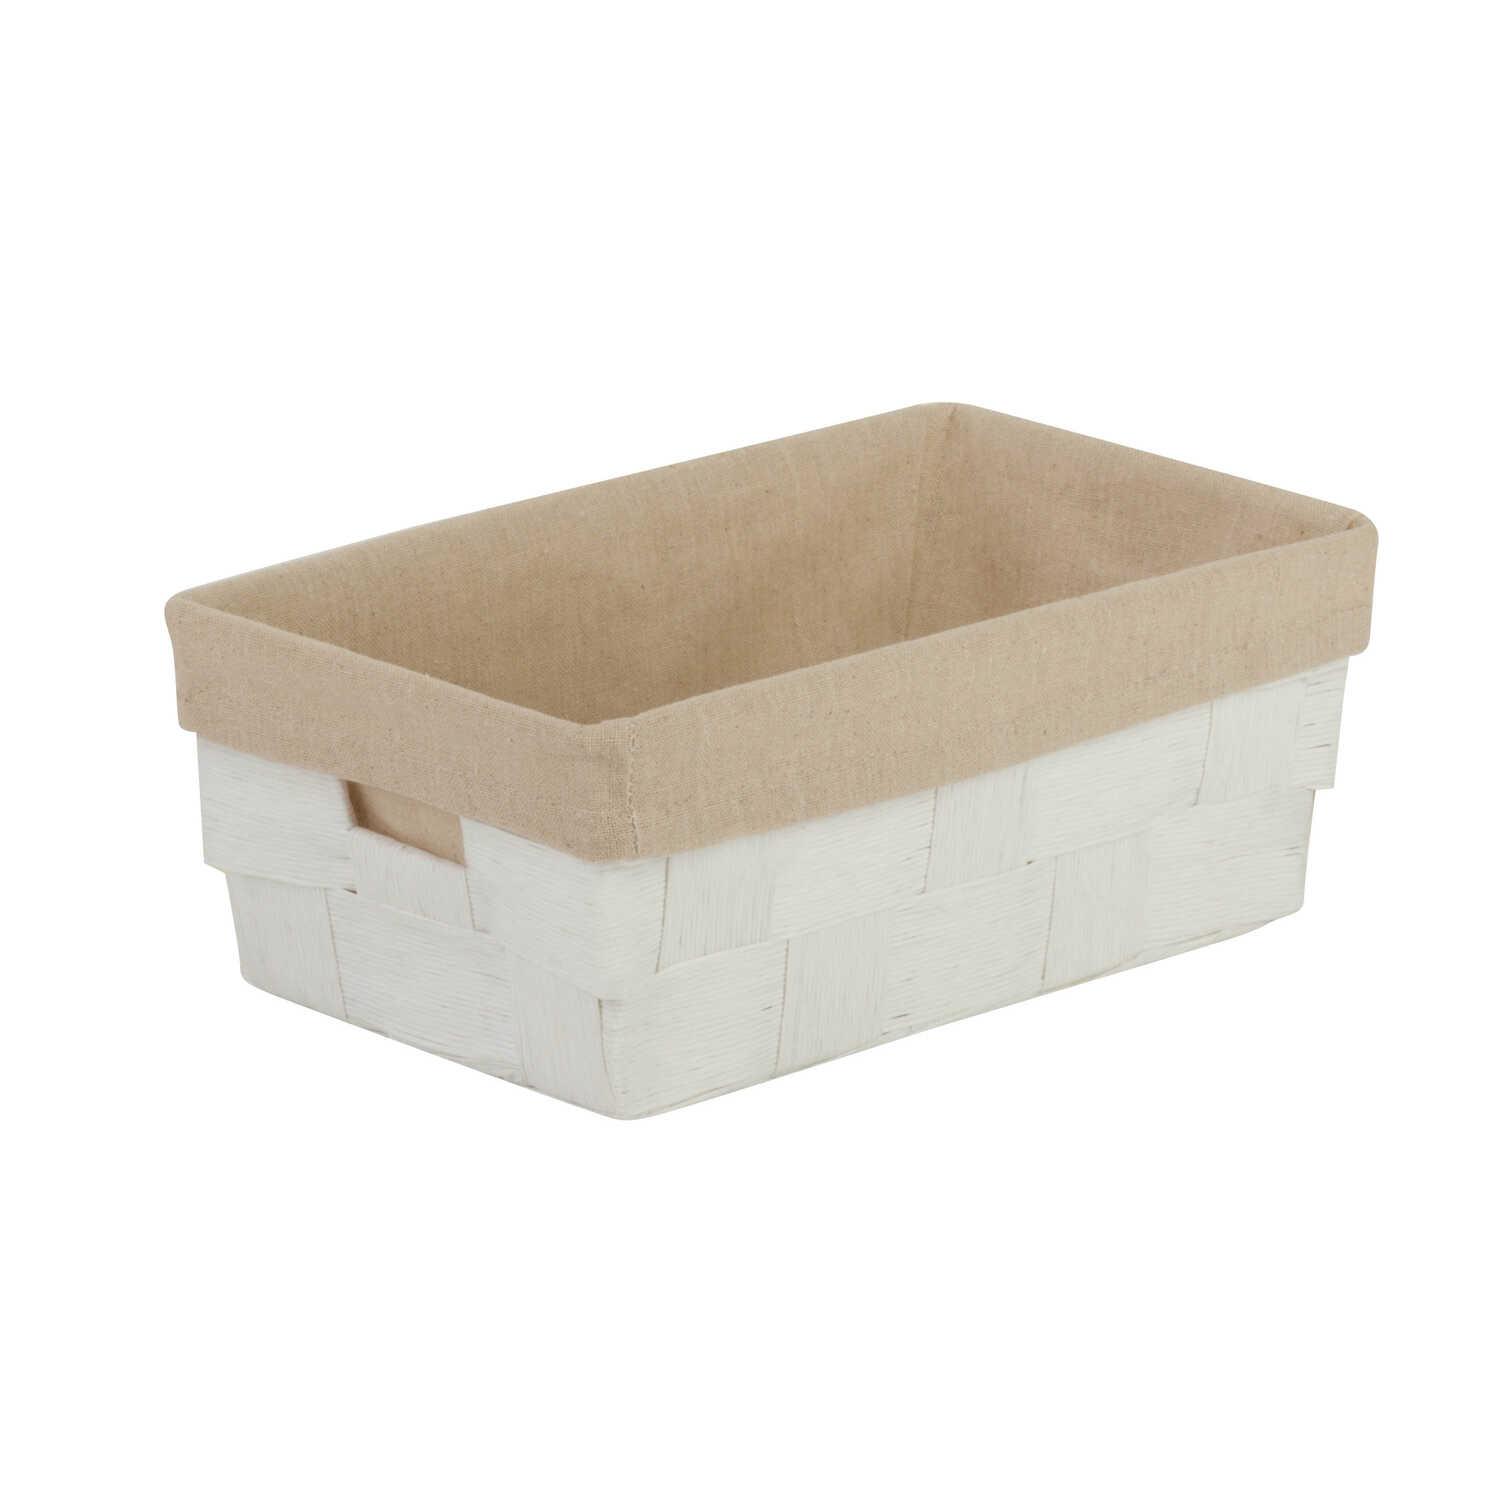 Honey Can Do  4-1/2 in. H x 7 in. W x 11.4 in. D Organizer Bin